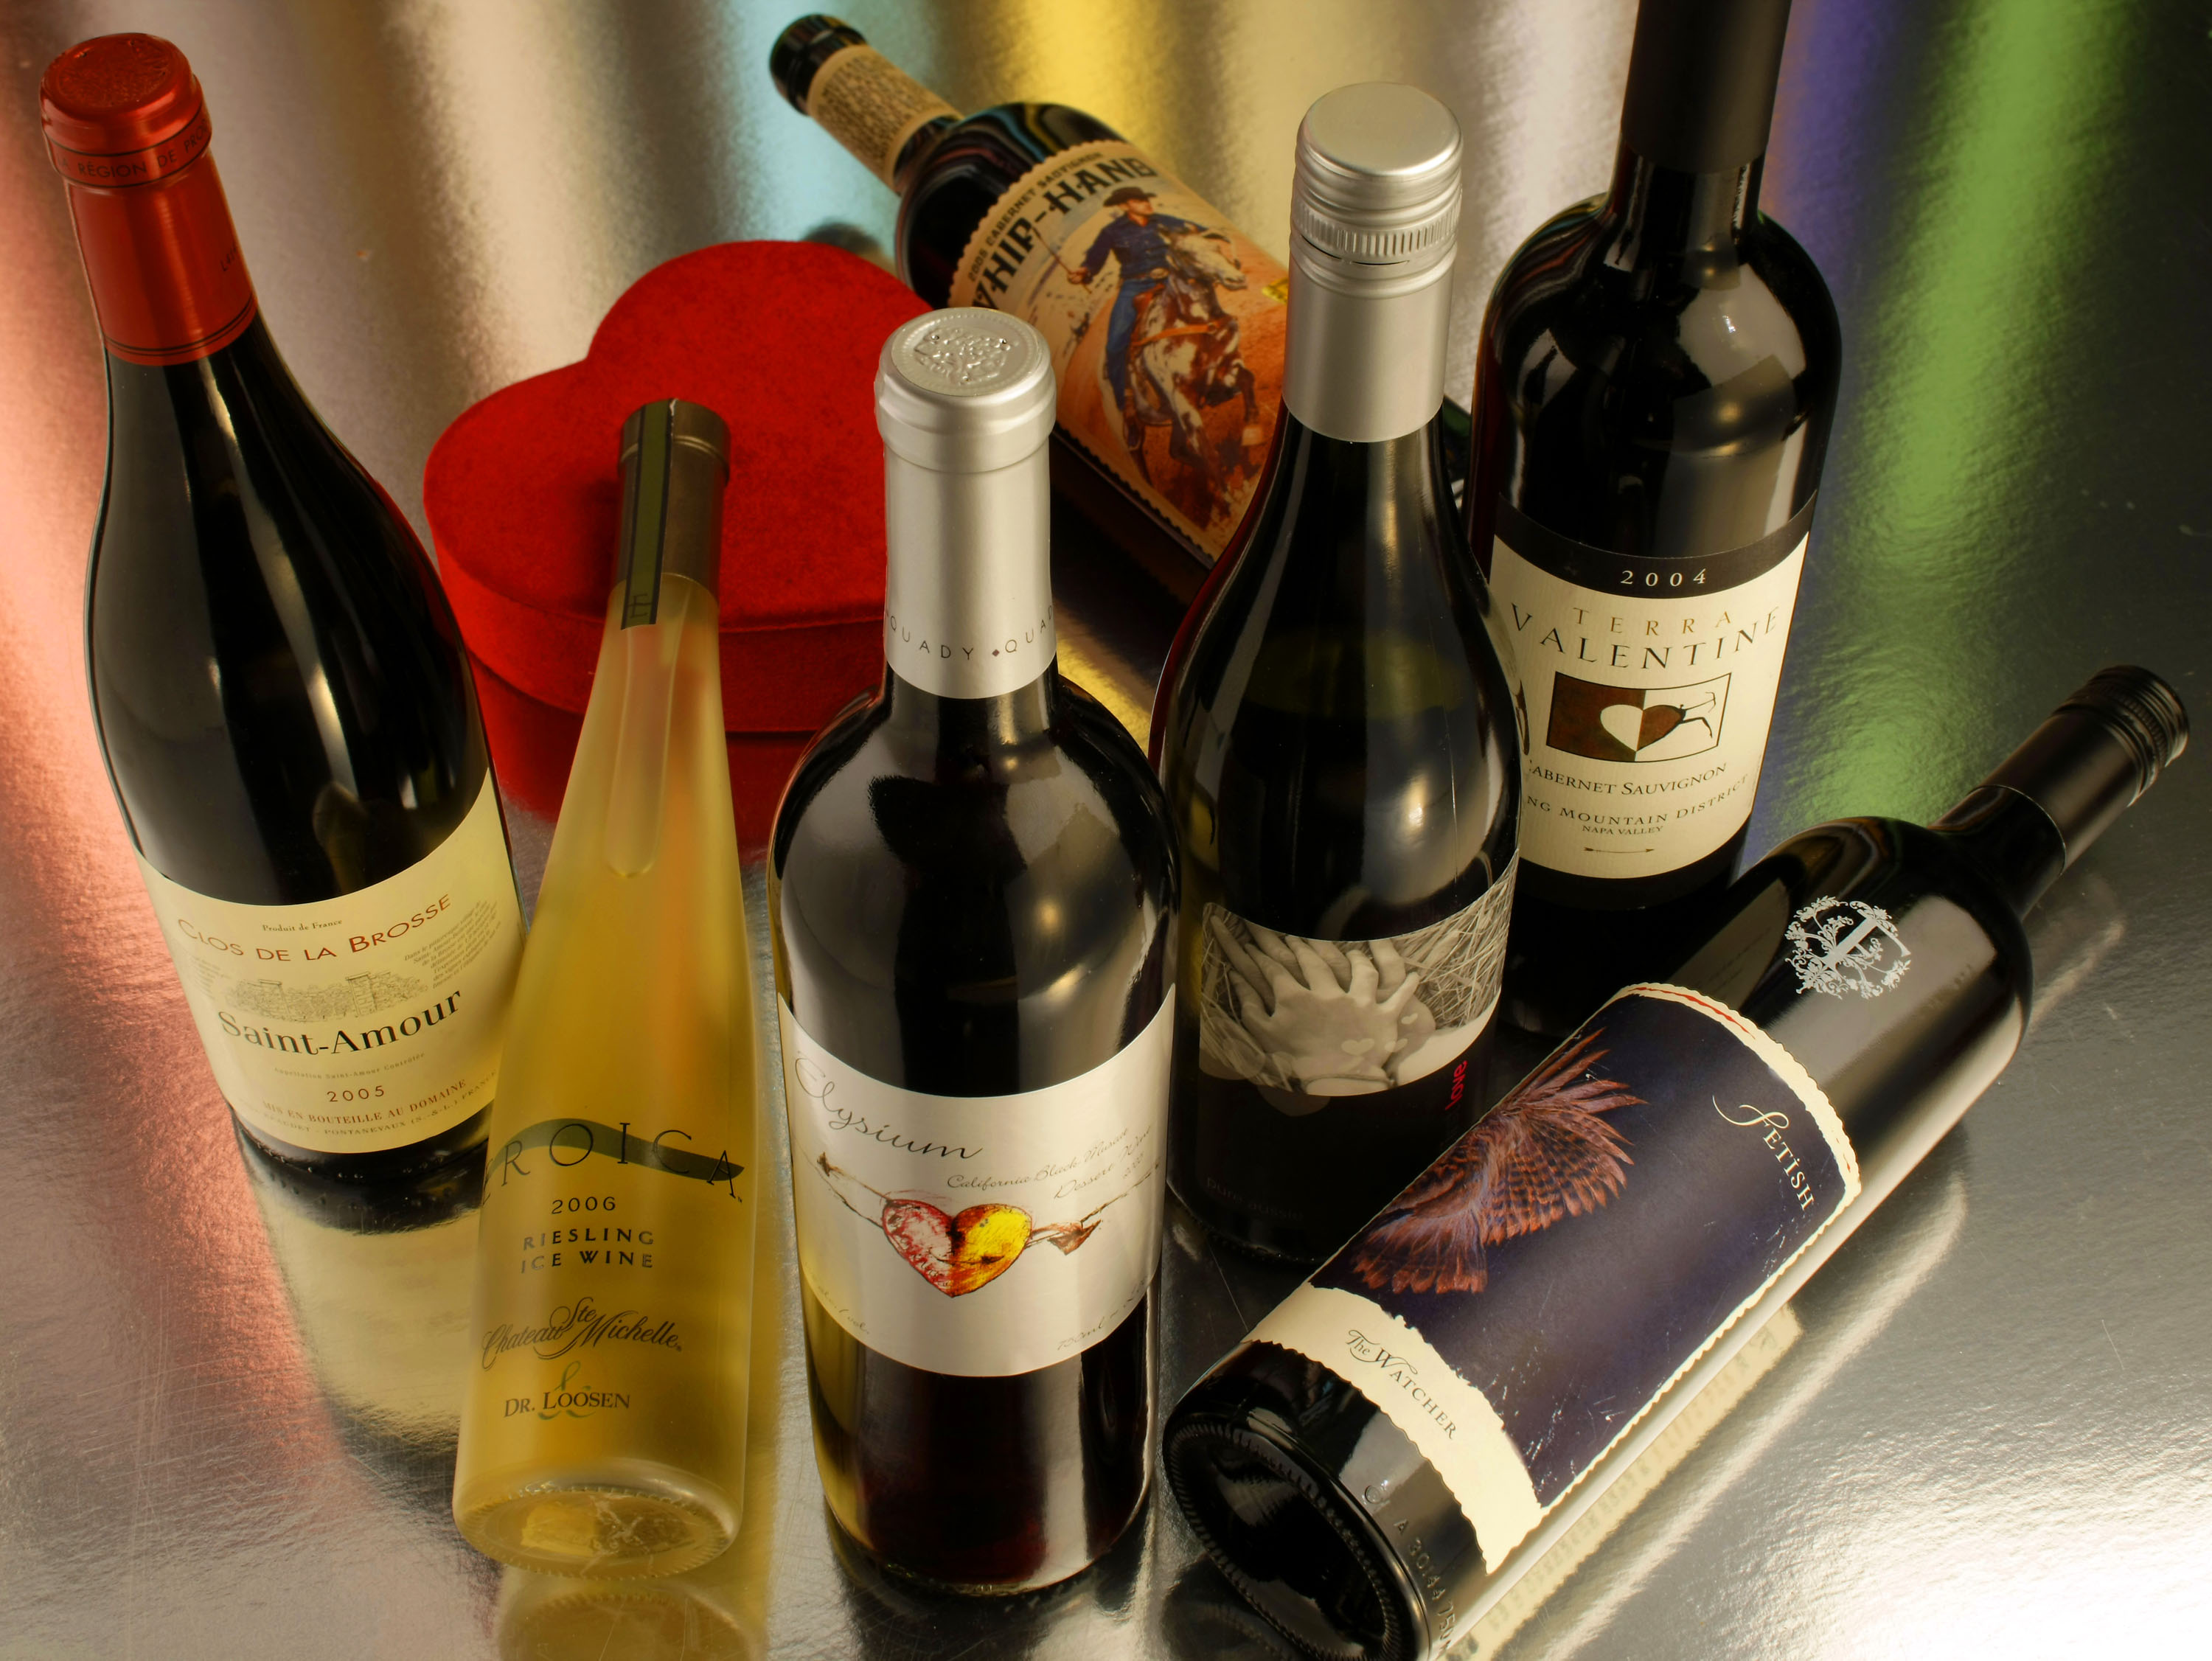 In this photograph, seven wines that can appeal to the heart are displayed.